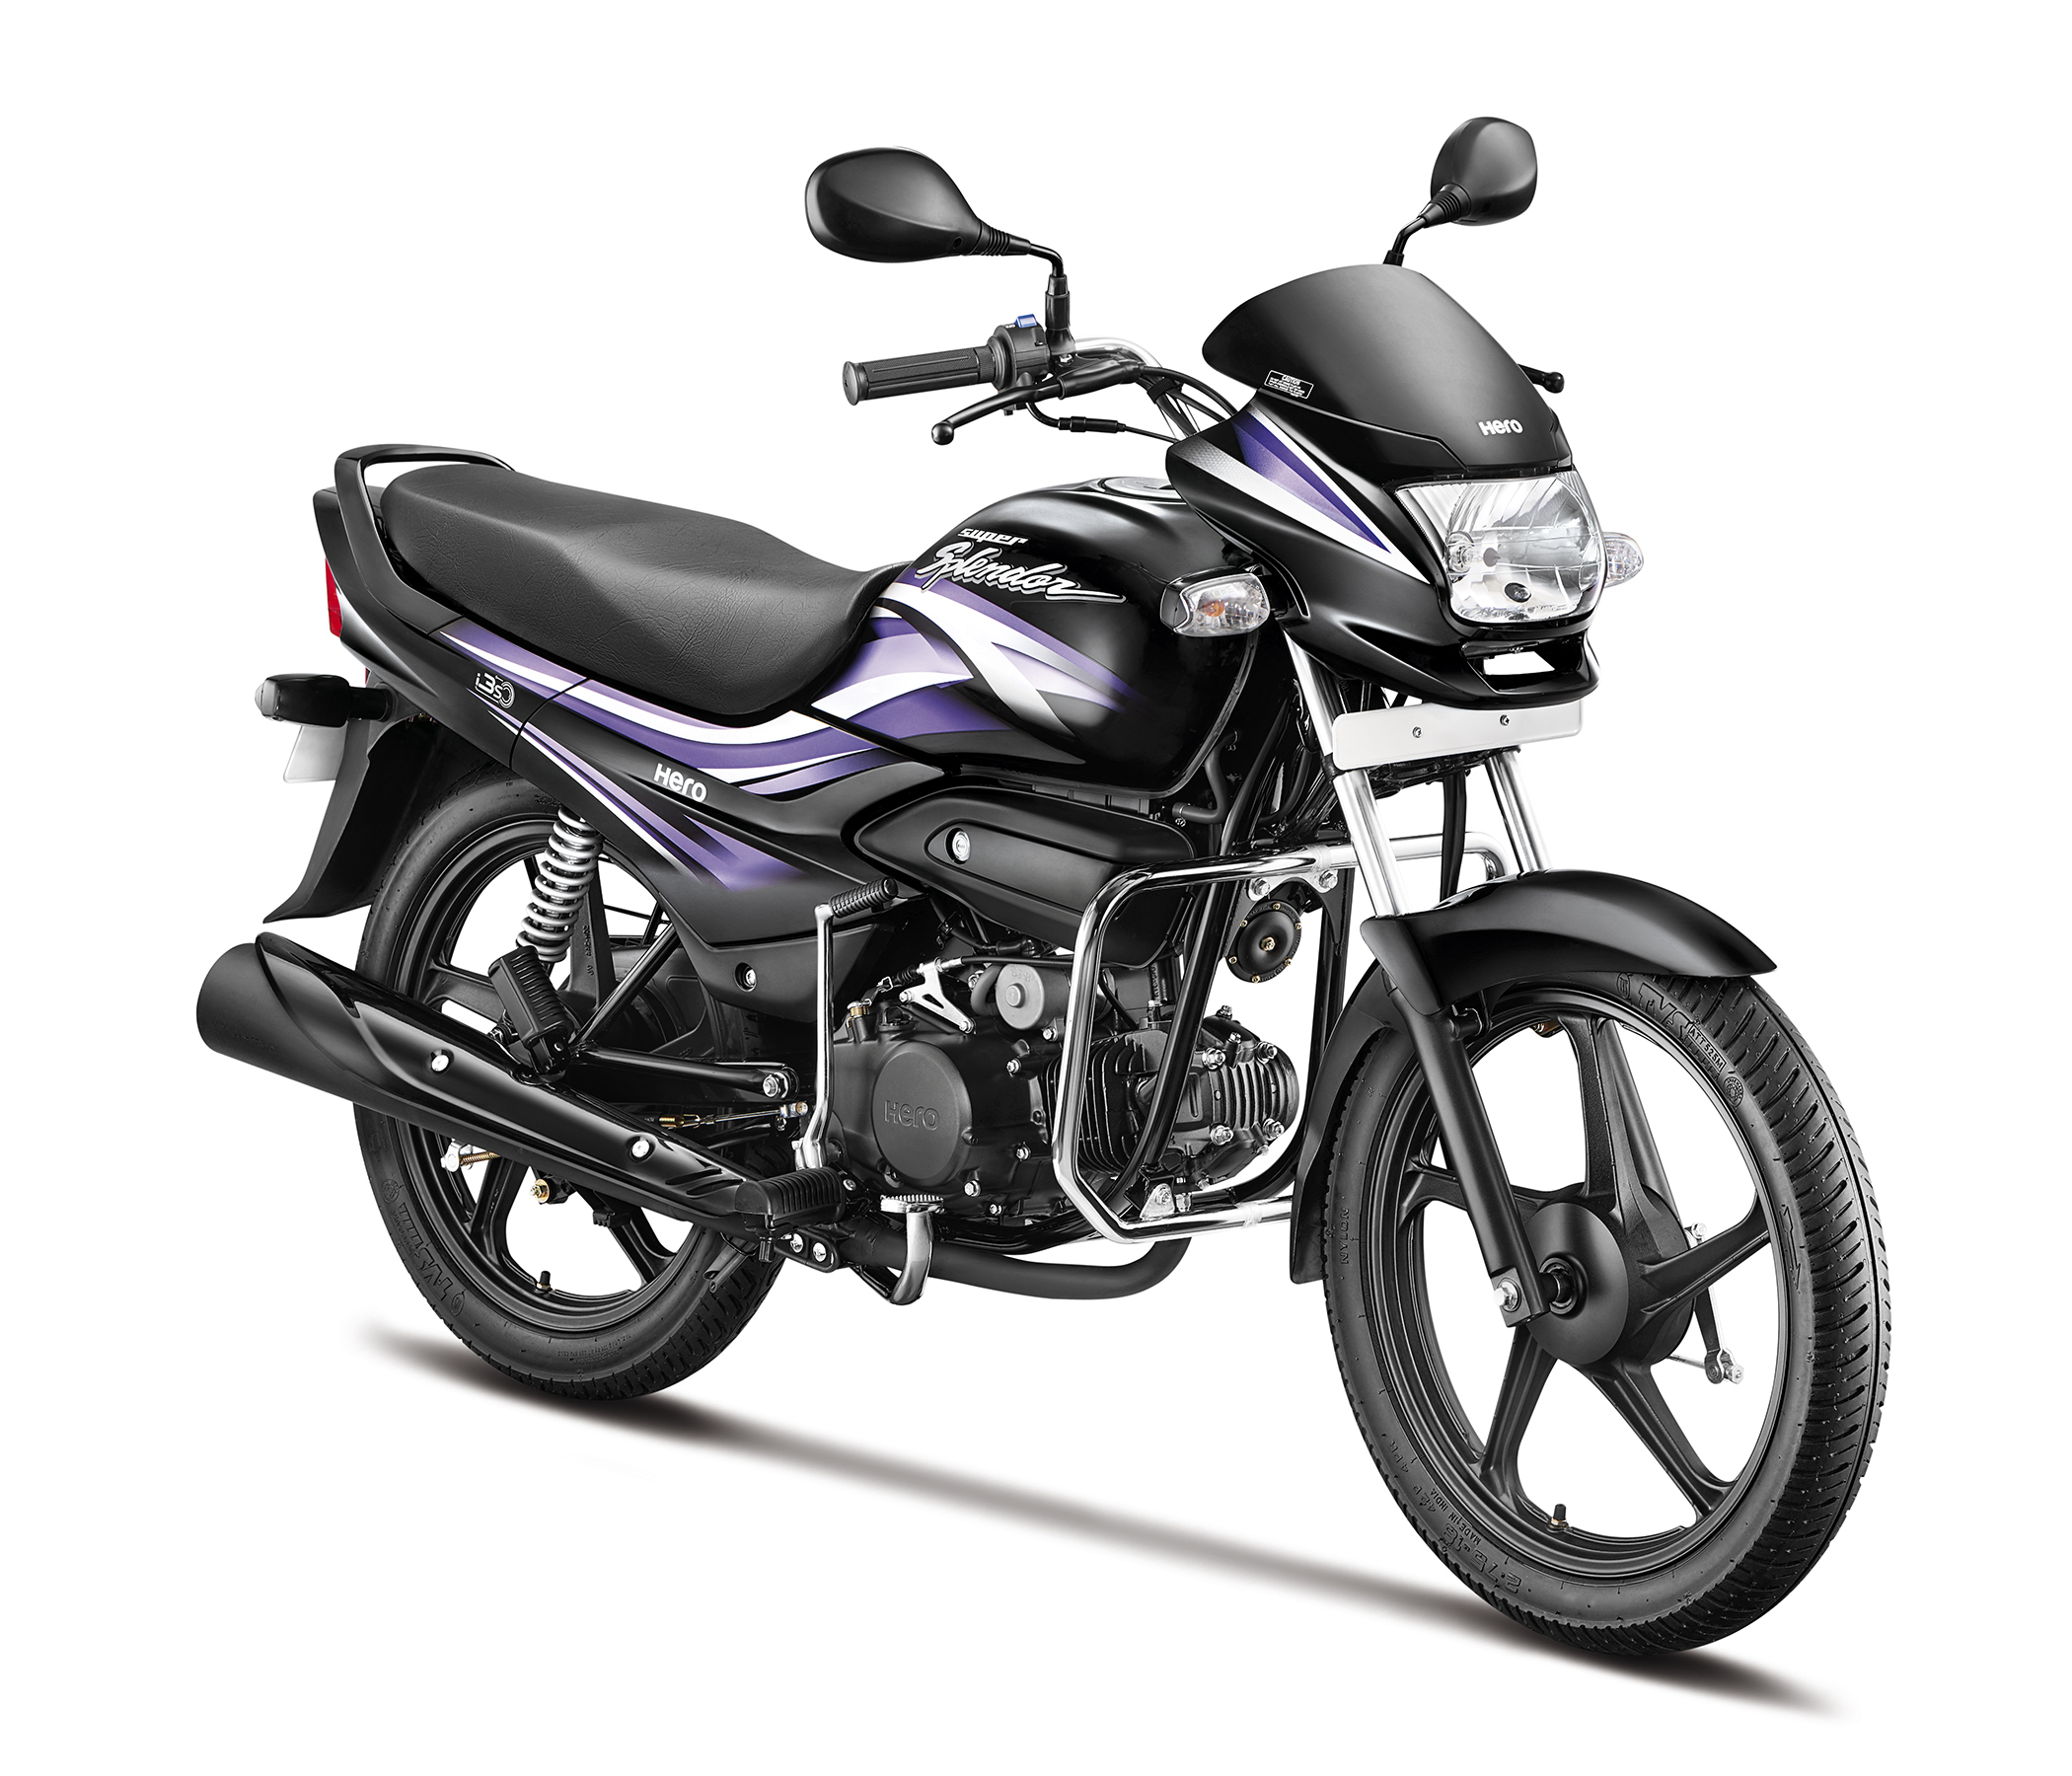 Hero Motocorp Launches New Super Splendor For Inr 57 190